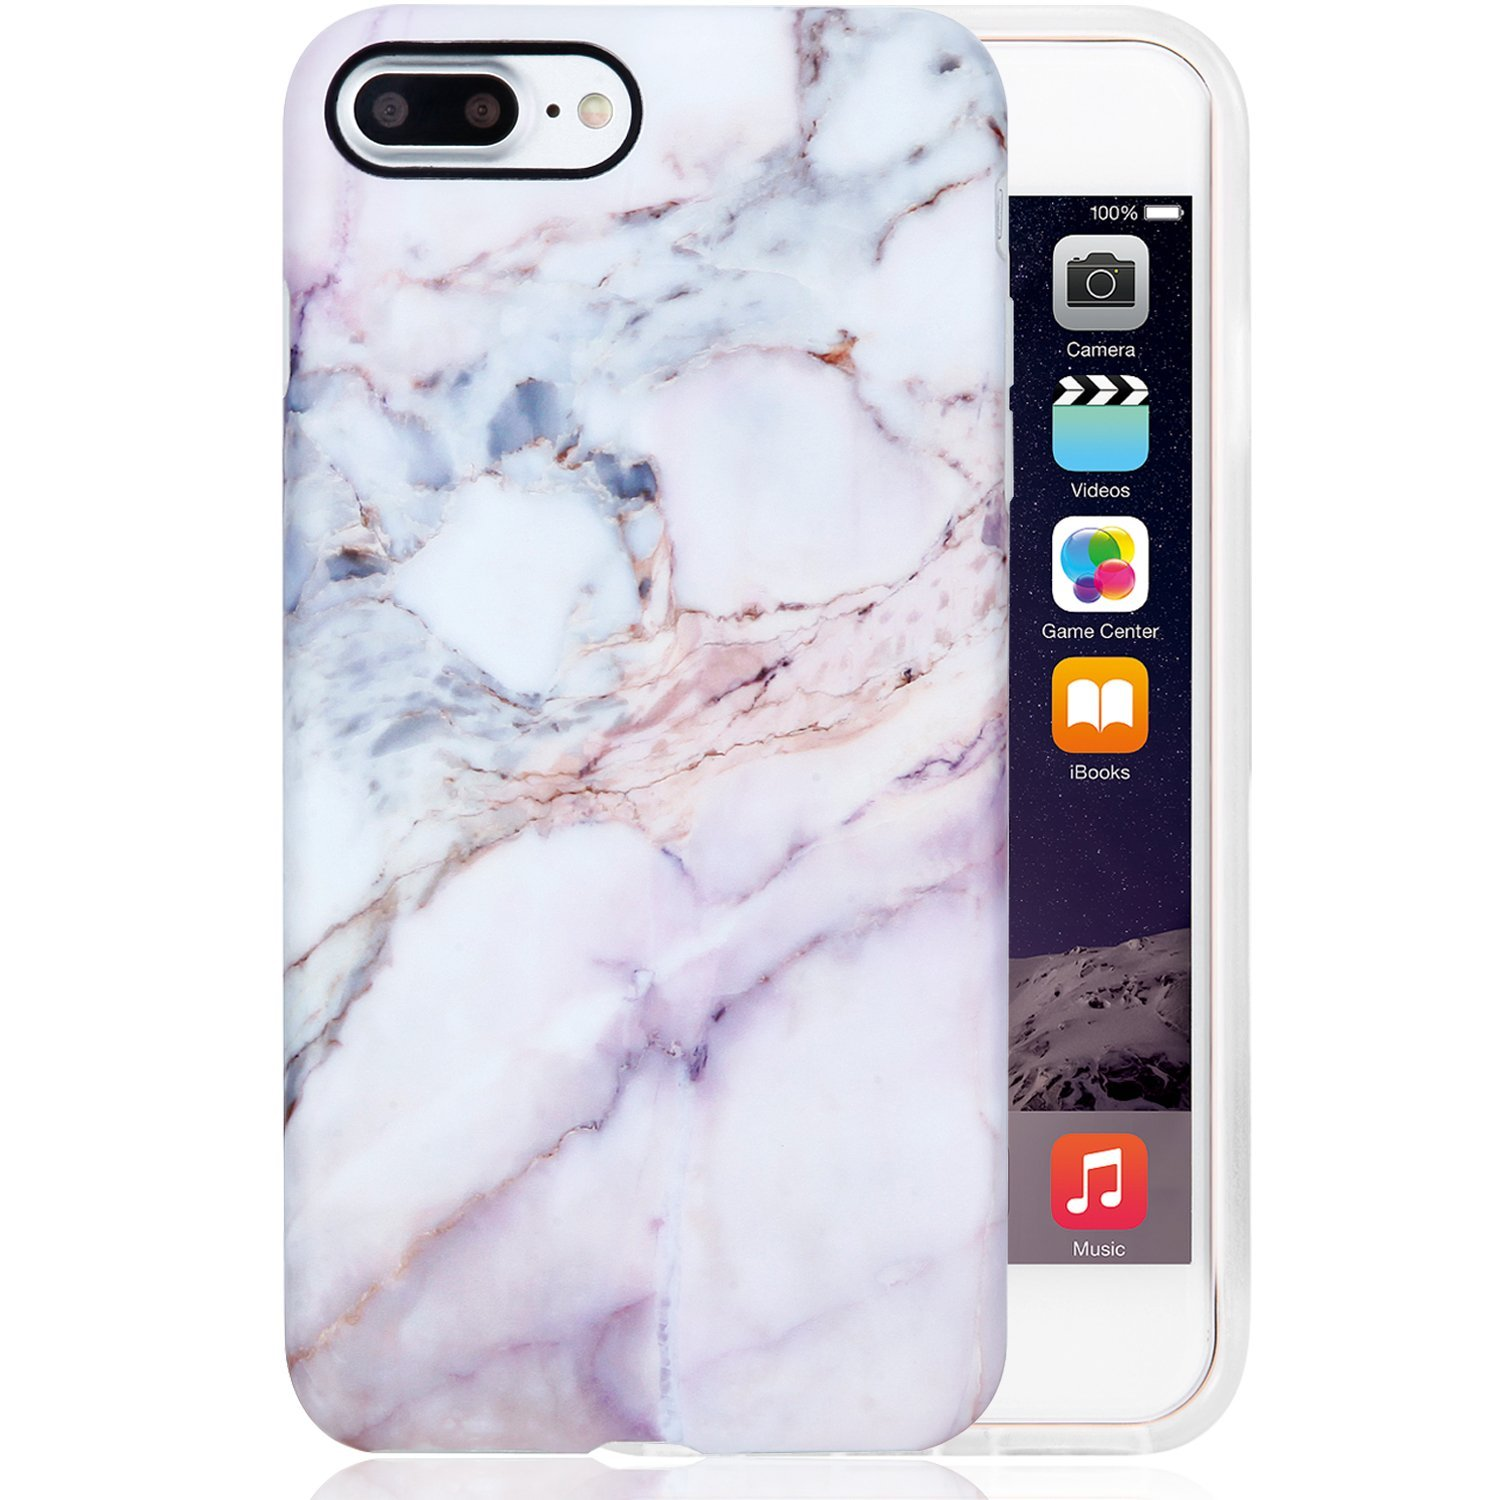 Buy Pink Marble iPhone 7 PLUS Case by Velvet Caviar